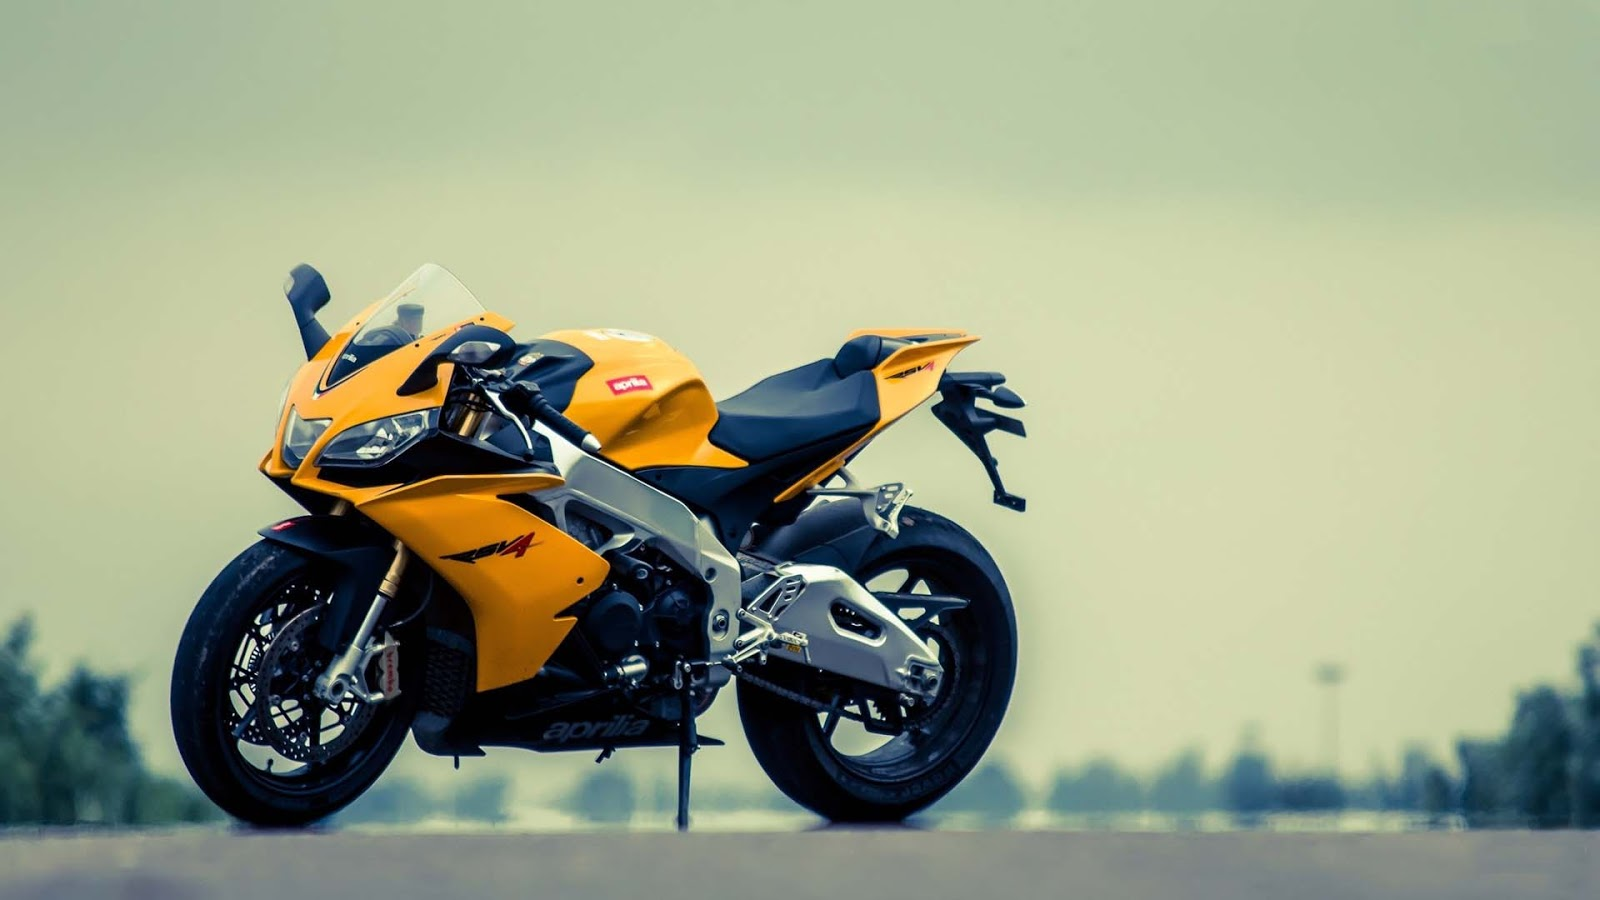 amazing super full hd bike wallpapers free love images | total update